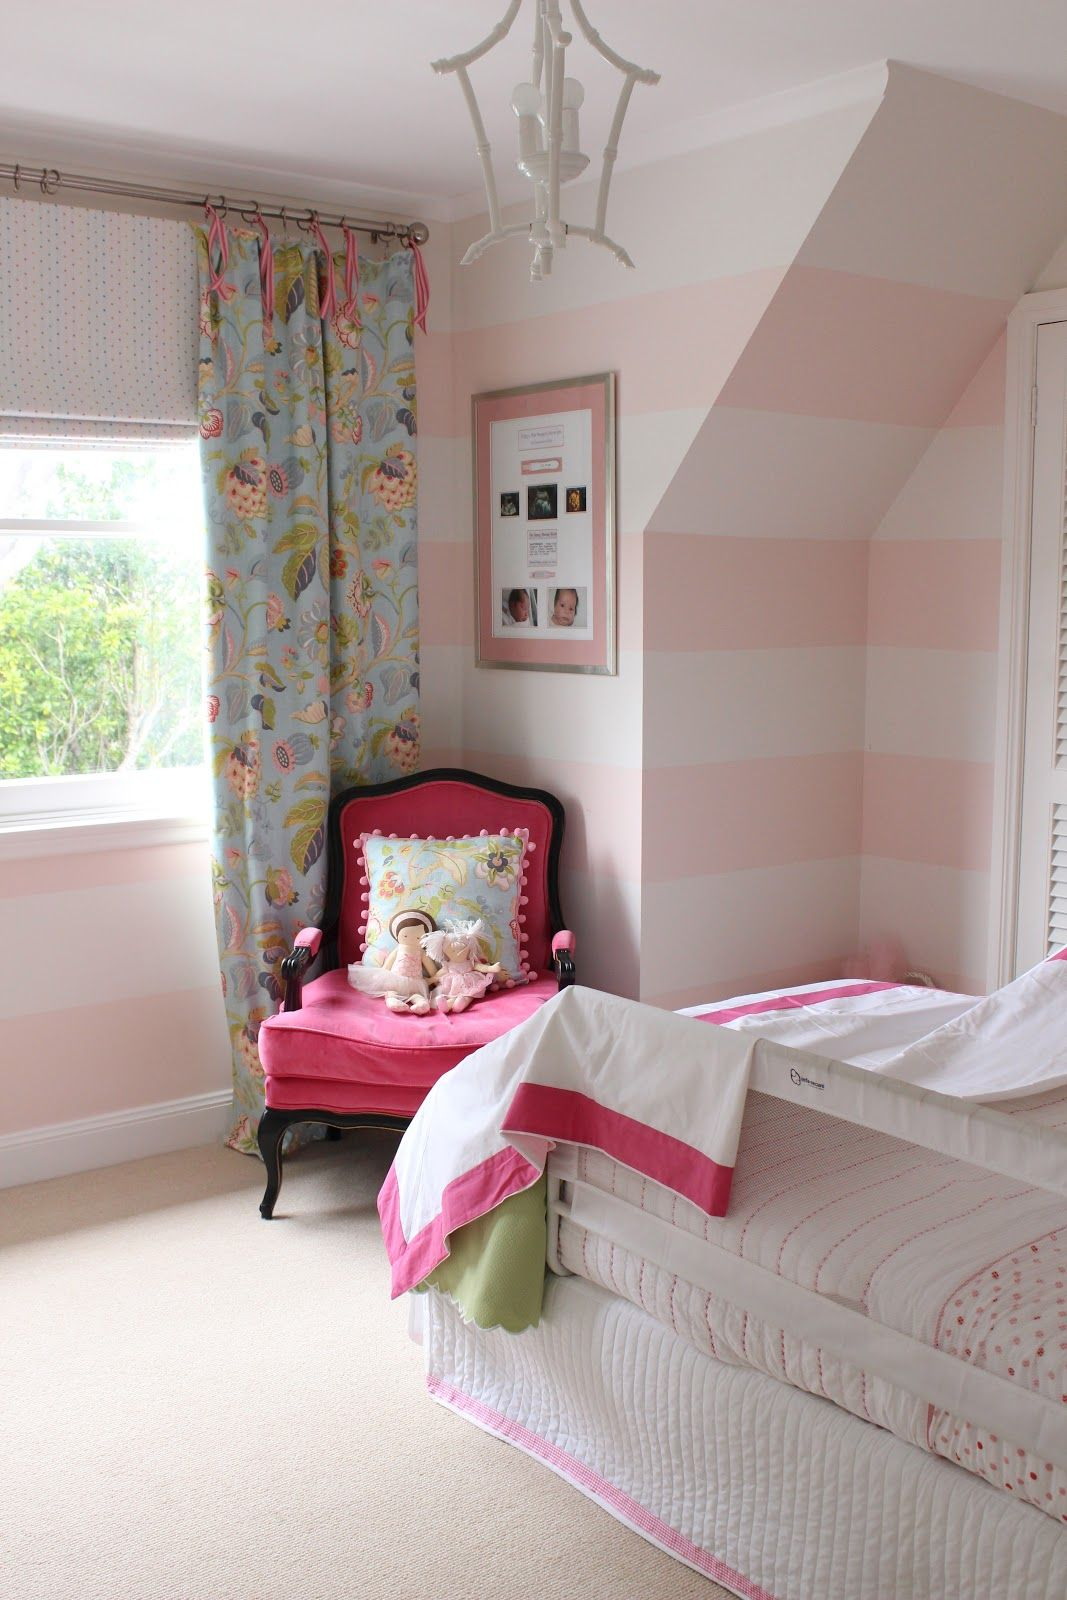 Img 1511 Jpg 1 067 1 600 Pixels Striped Room Pink Striped Walls Hot Pink Room